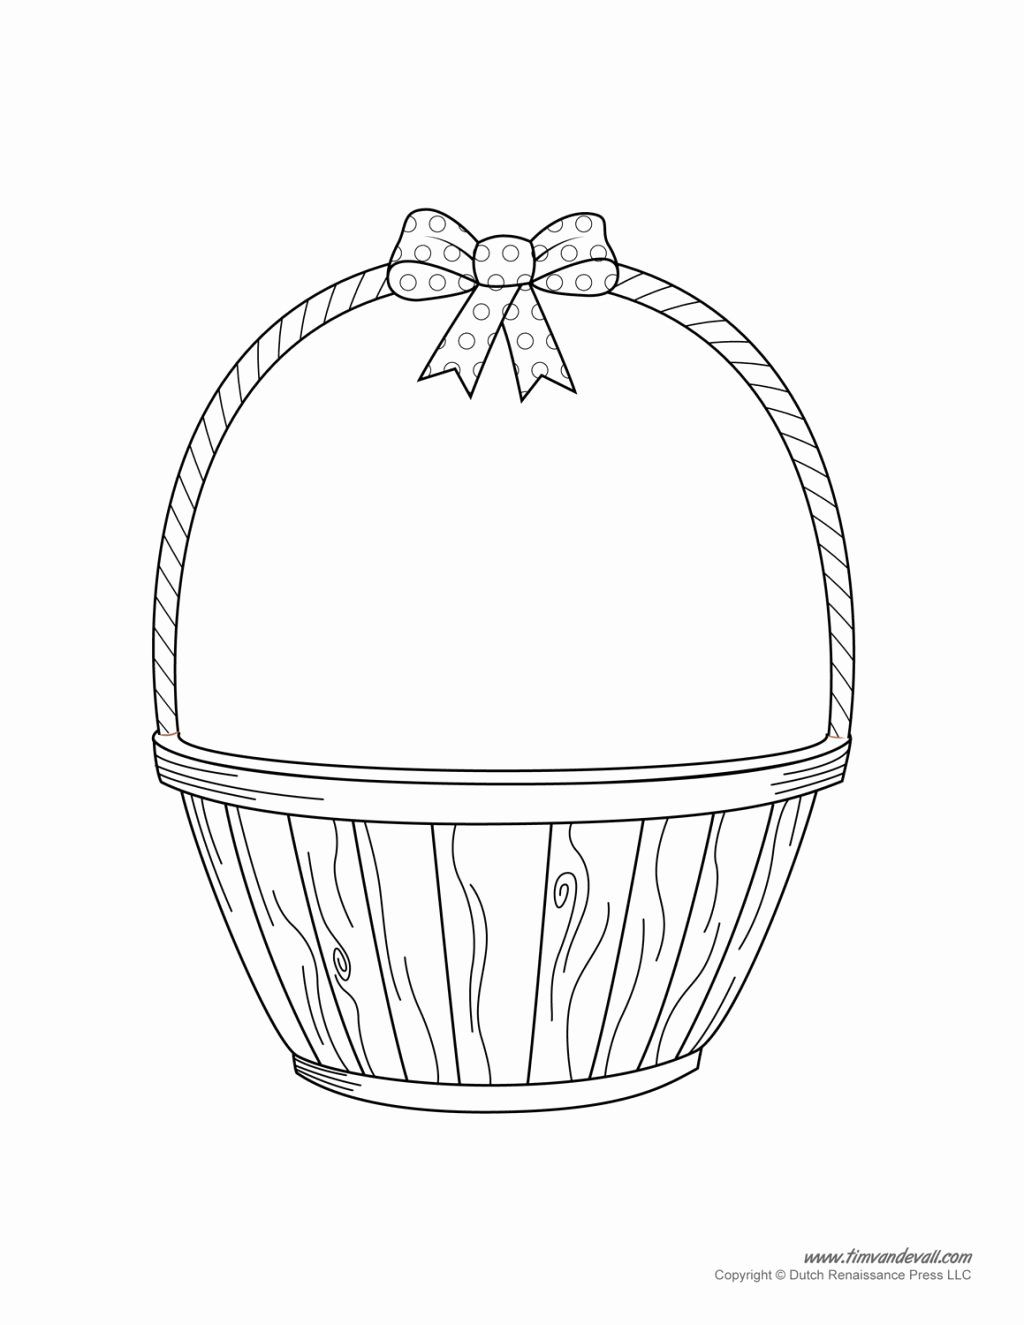 Empty Easter Basket Coloring Page In 2020 Easter Basket Printable